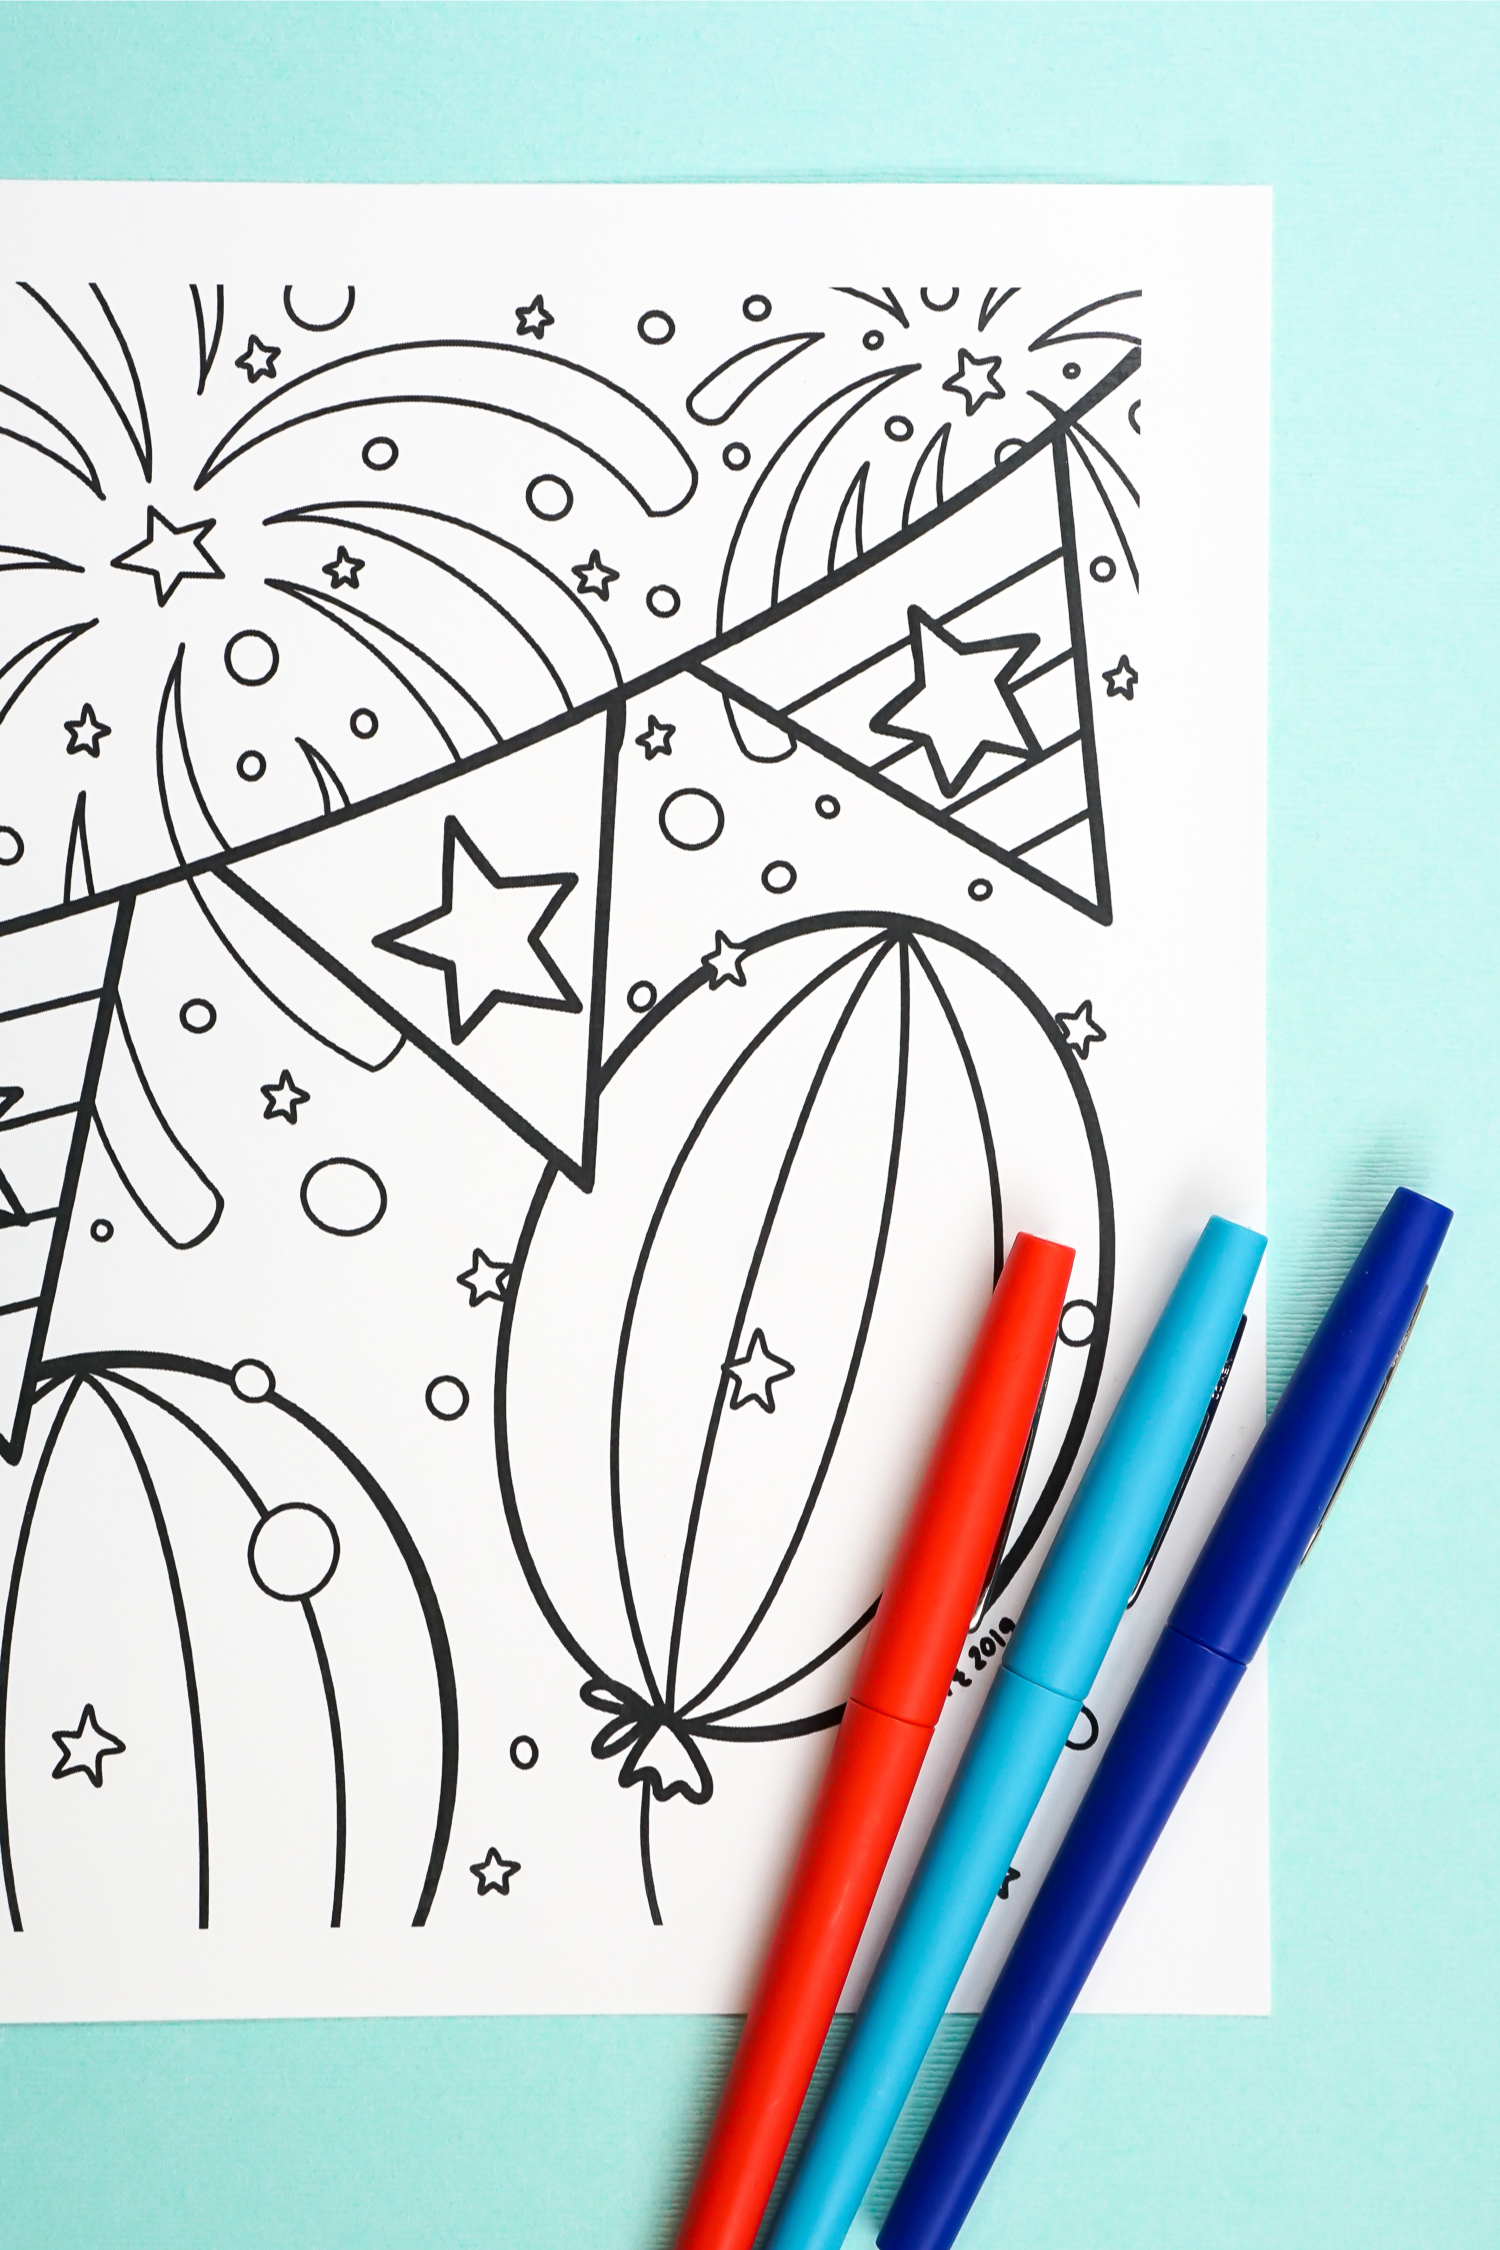 This free printable 4th of July coloring page will get you in the patriotic mood. Kids and adults alike will love creating this Independence Day masterpiece. Print it out for free, grab your favorite colors and bring the page to life!